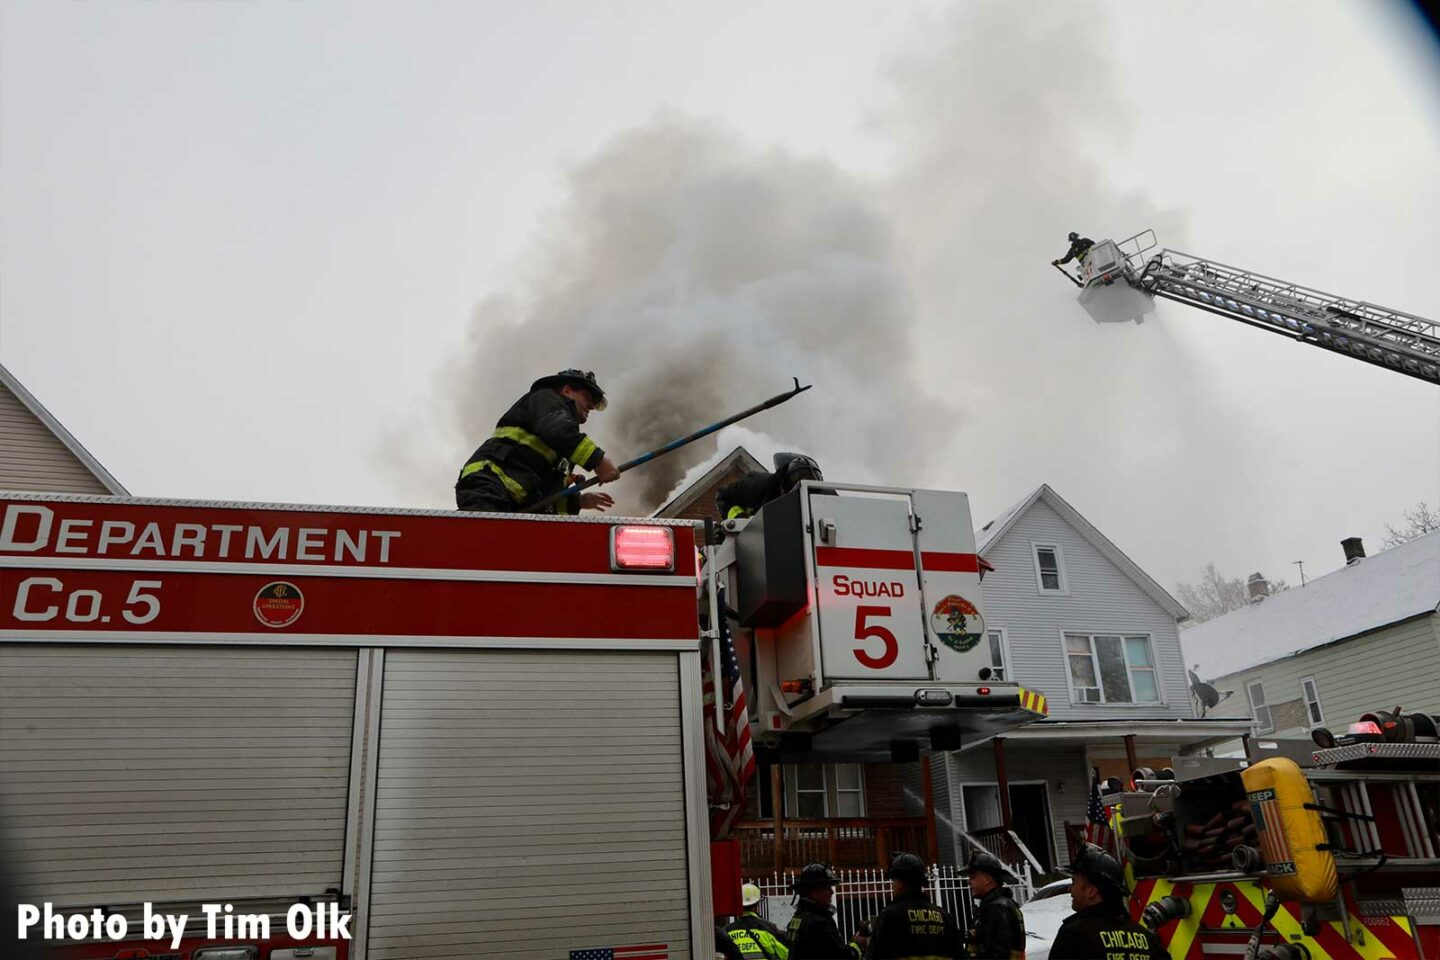 Chicago firefighter with a hook atop Squad 5 with Chicago firefighter in a tower ladder bucket in the background